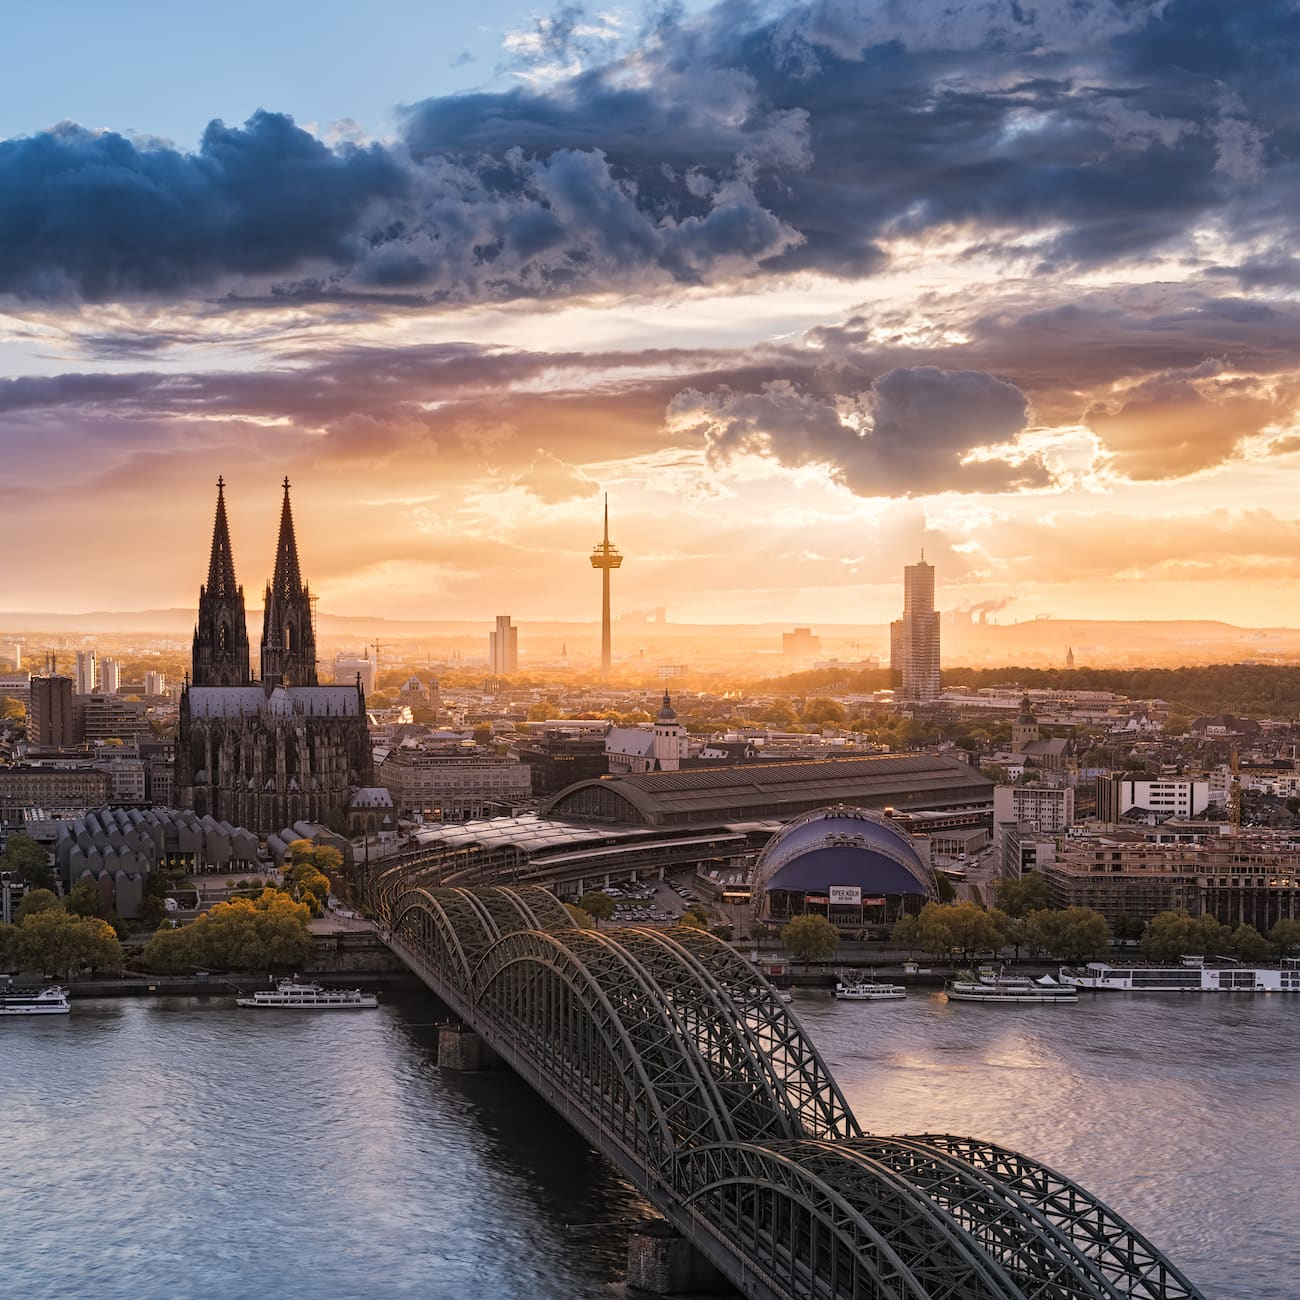 A city featuring a church with spires, skyscrapers and a covered bridge that spans the Rhine River